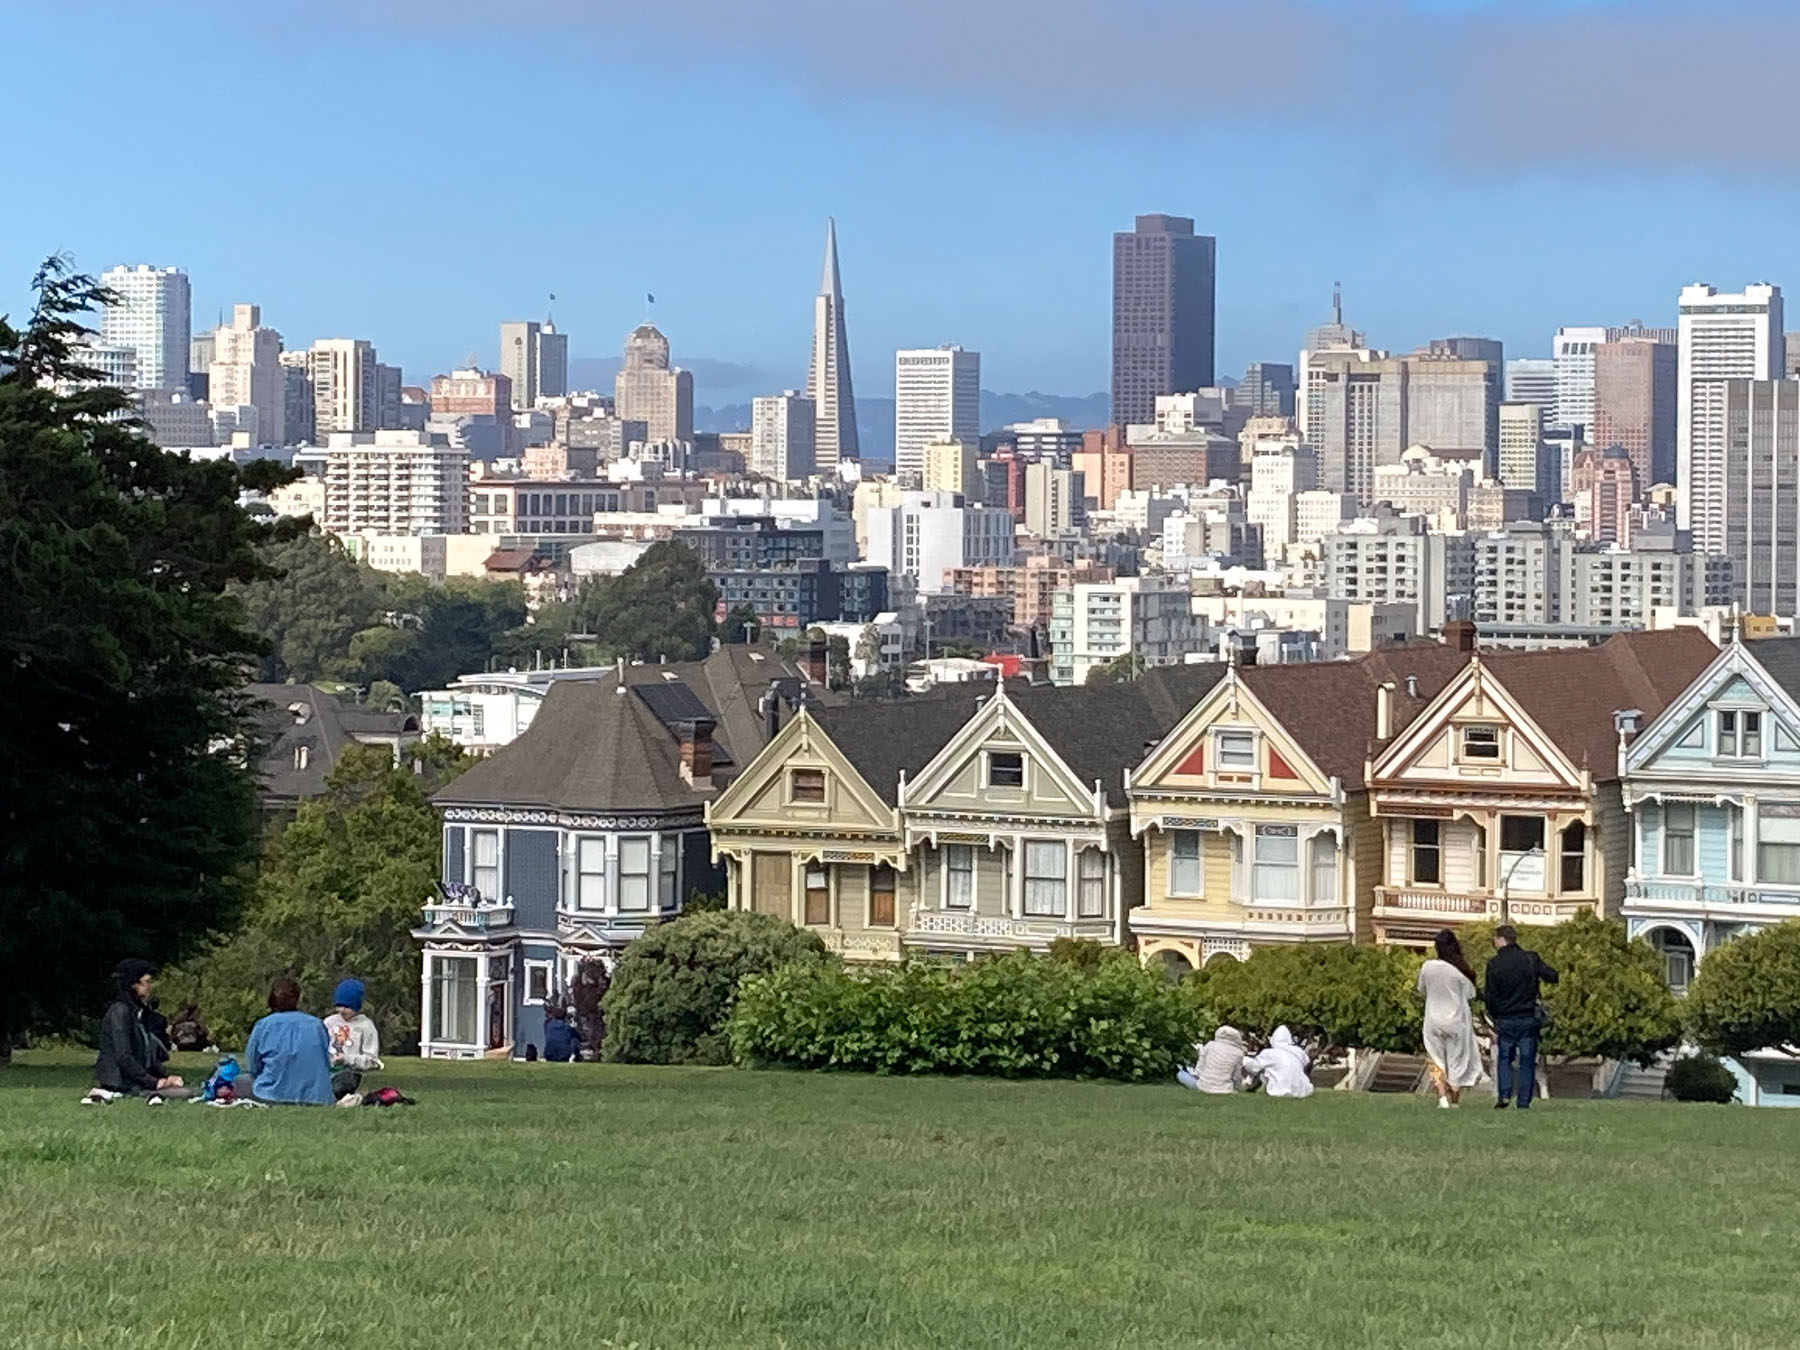 """People sitting in Alamo Square park with view of """"Painted Ladies"""" and downtown skyscrapers"""